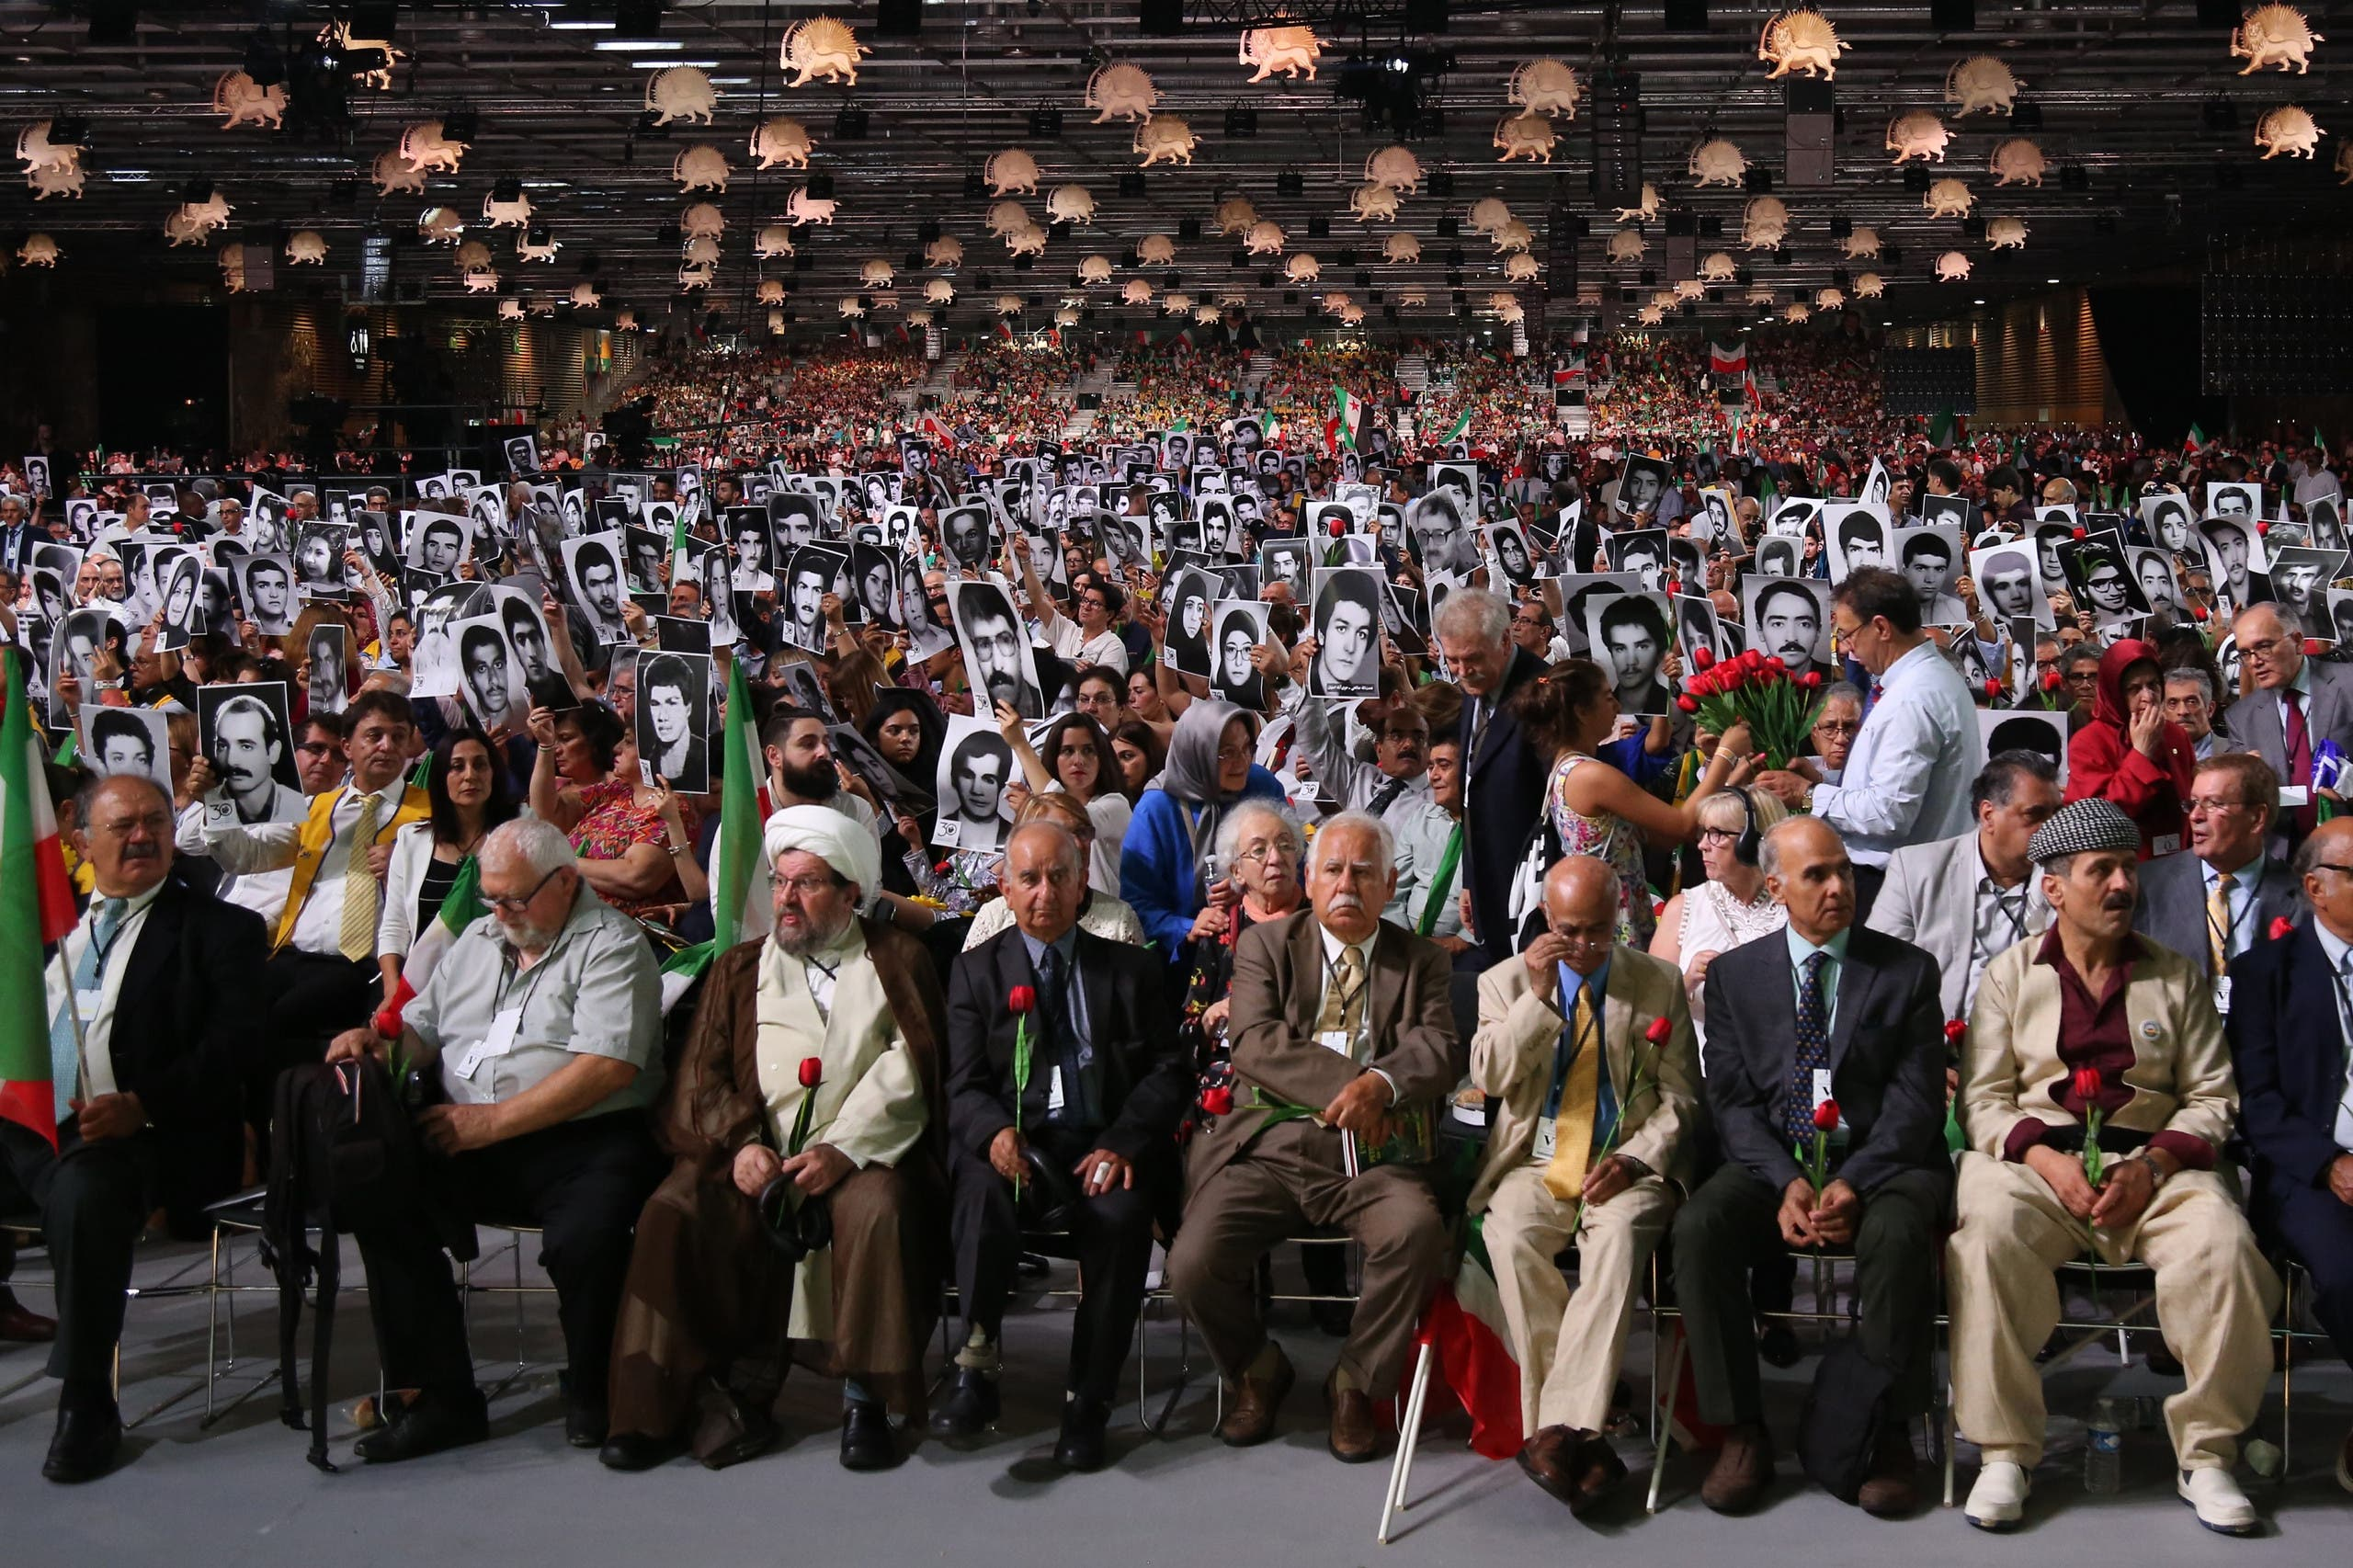 """People hold pictures of relatives killed by Mohllas regime during """"Free Iran 2018"""" event in Villepinte, north of Paris, on June 30, 2018. (AFP)"""